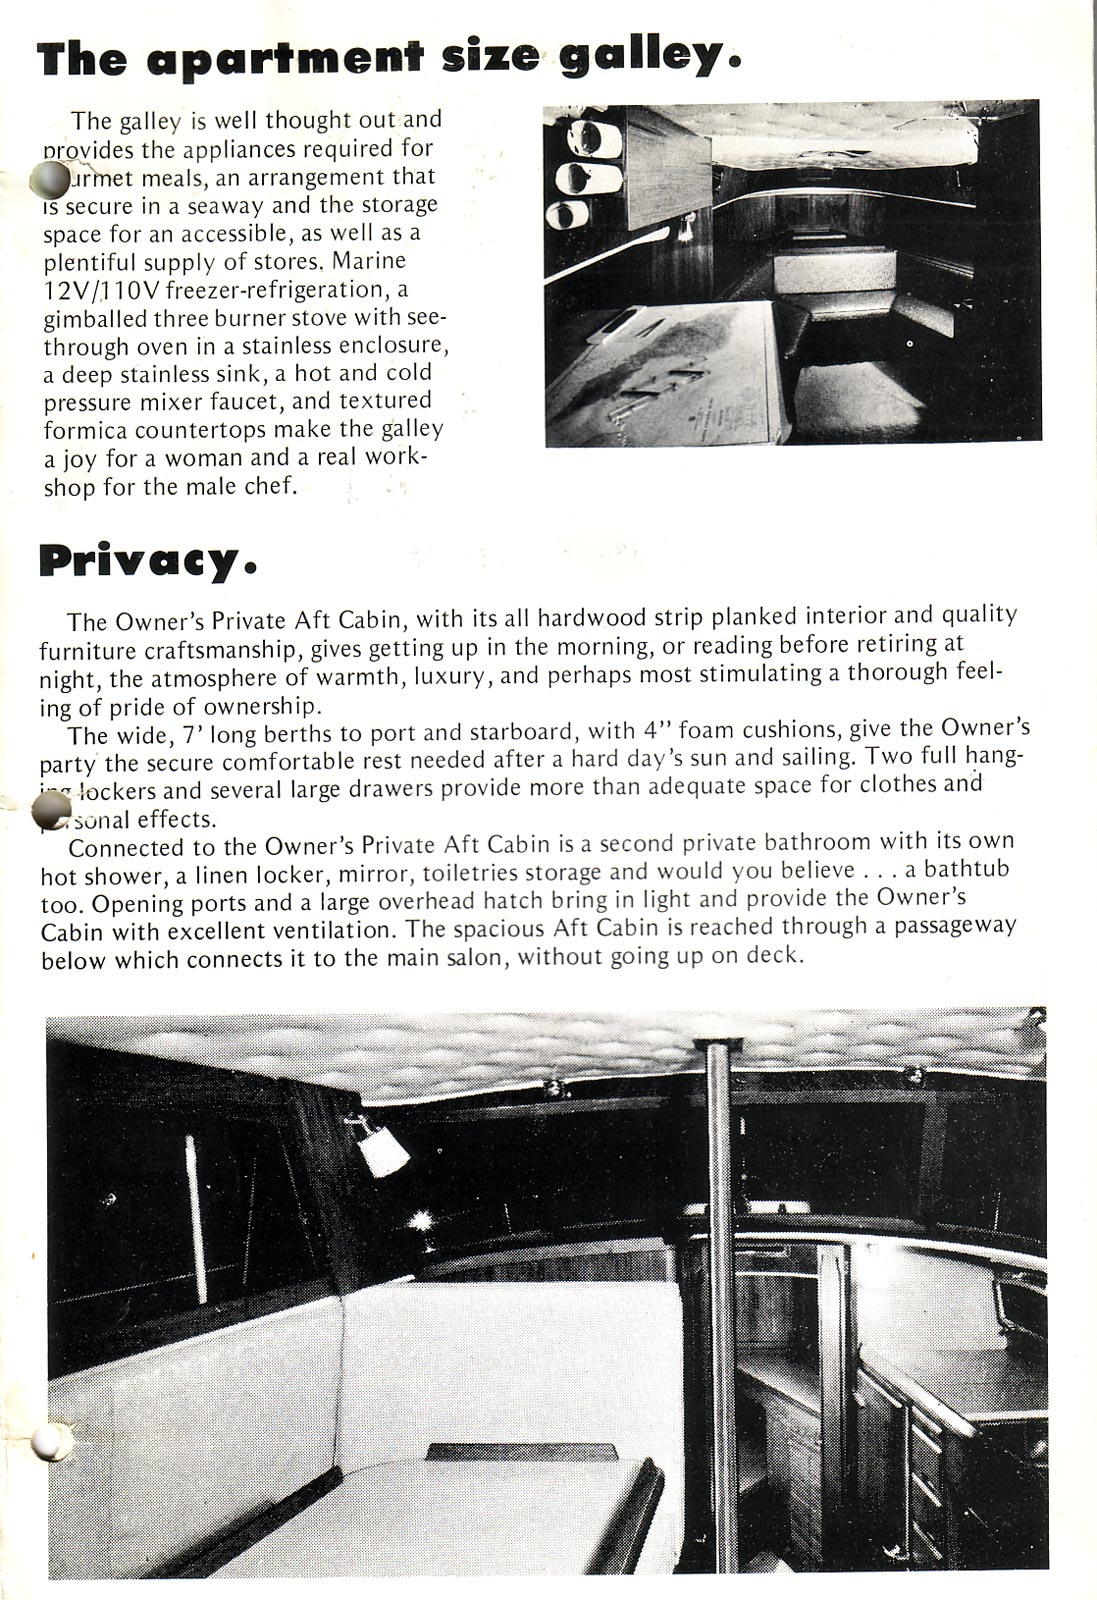 Click image for larger version  Name:Anacapa-Brochure-3.jpg Views:124 Size:397.9 KB ID:5874